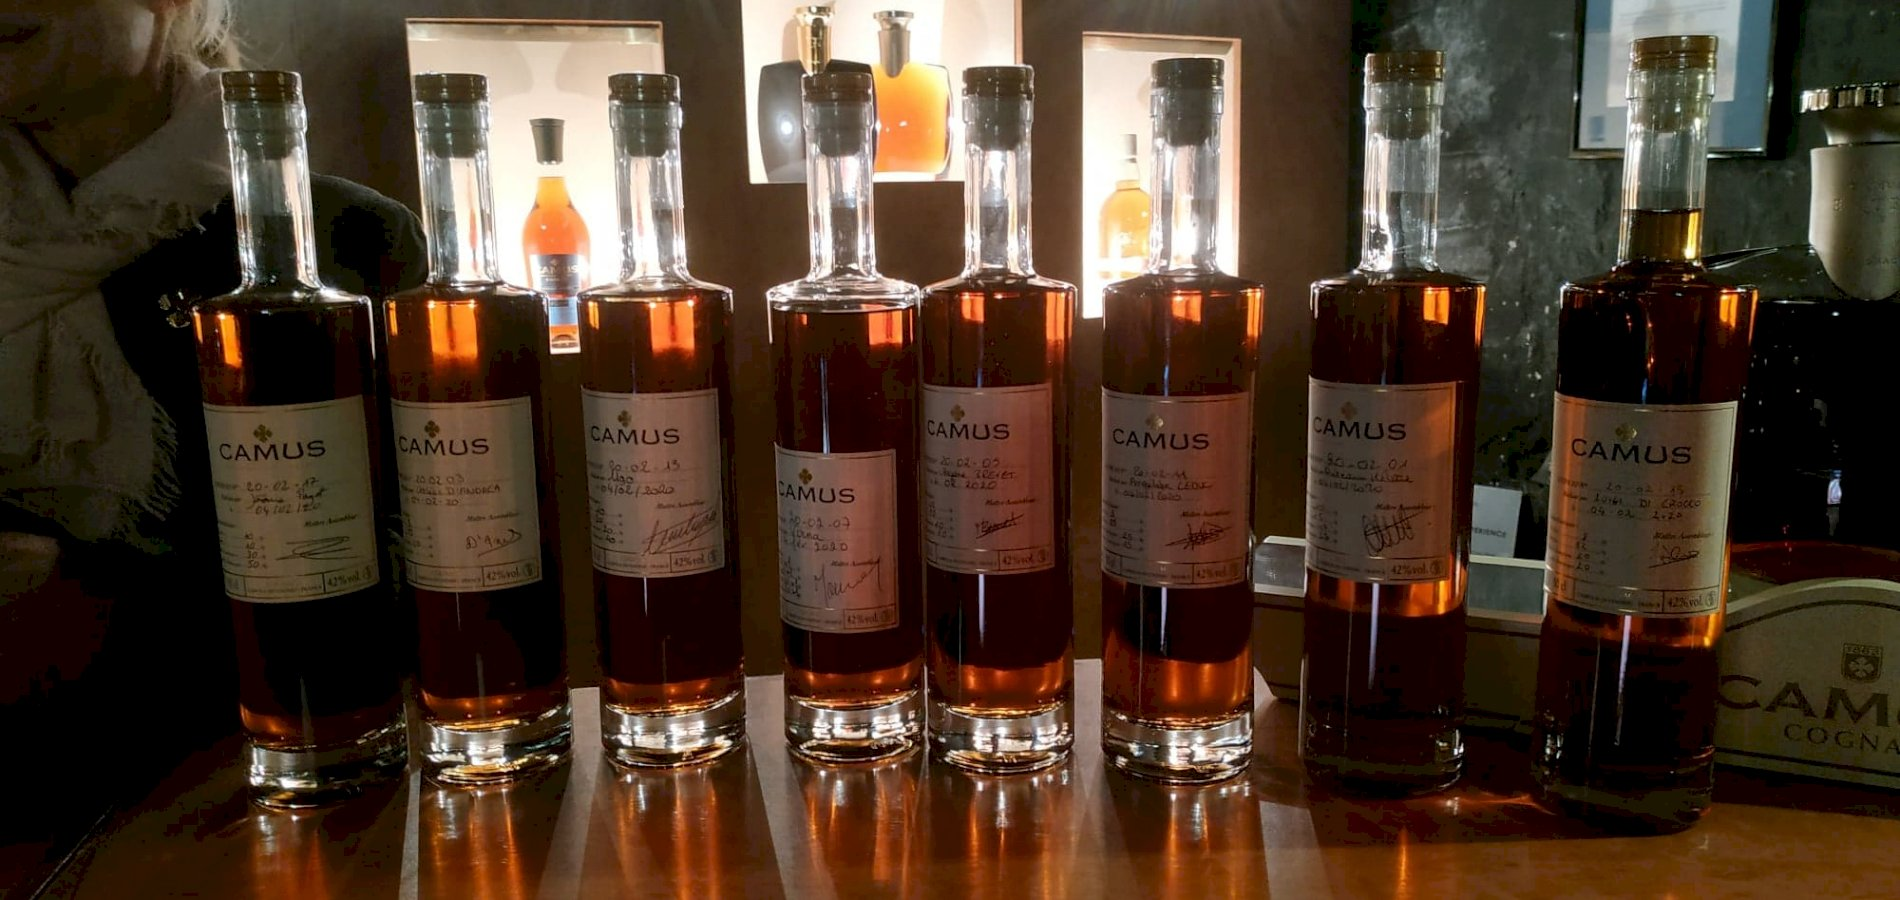 Ophorus Tours - Cognac Brandy Experience Small Group Private Shore Excursion From Bordeaux